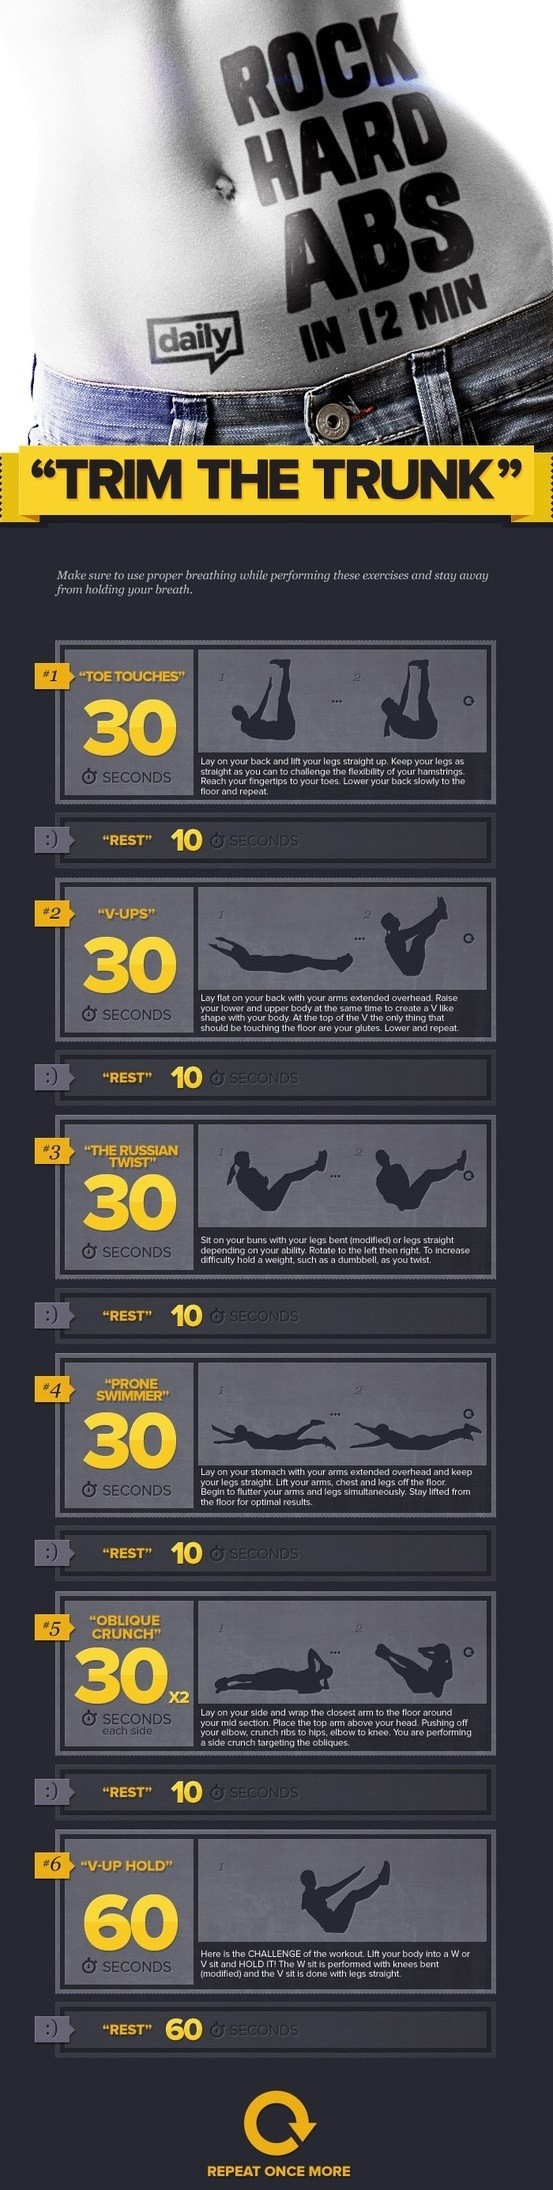 12 min of stomach exercises